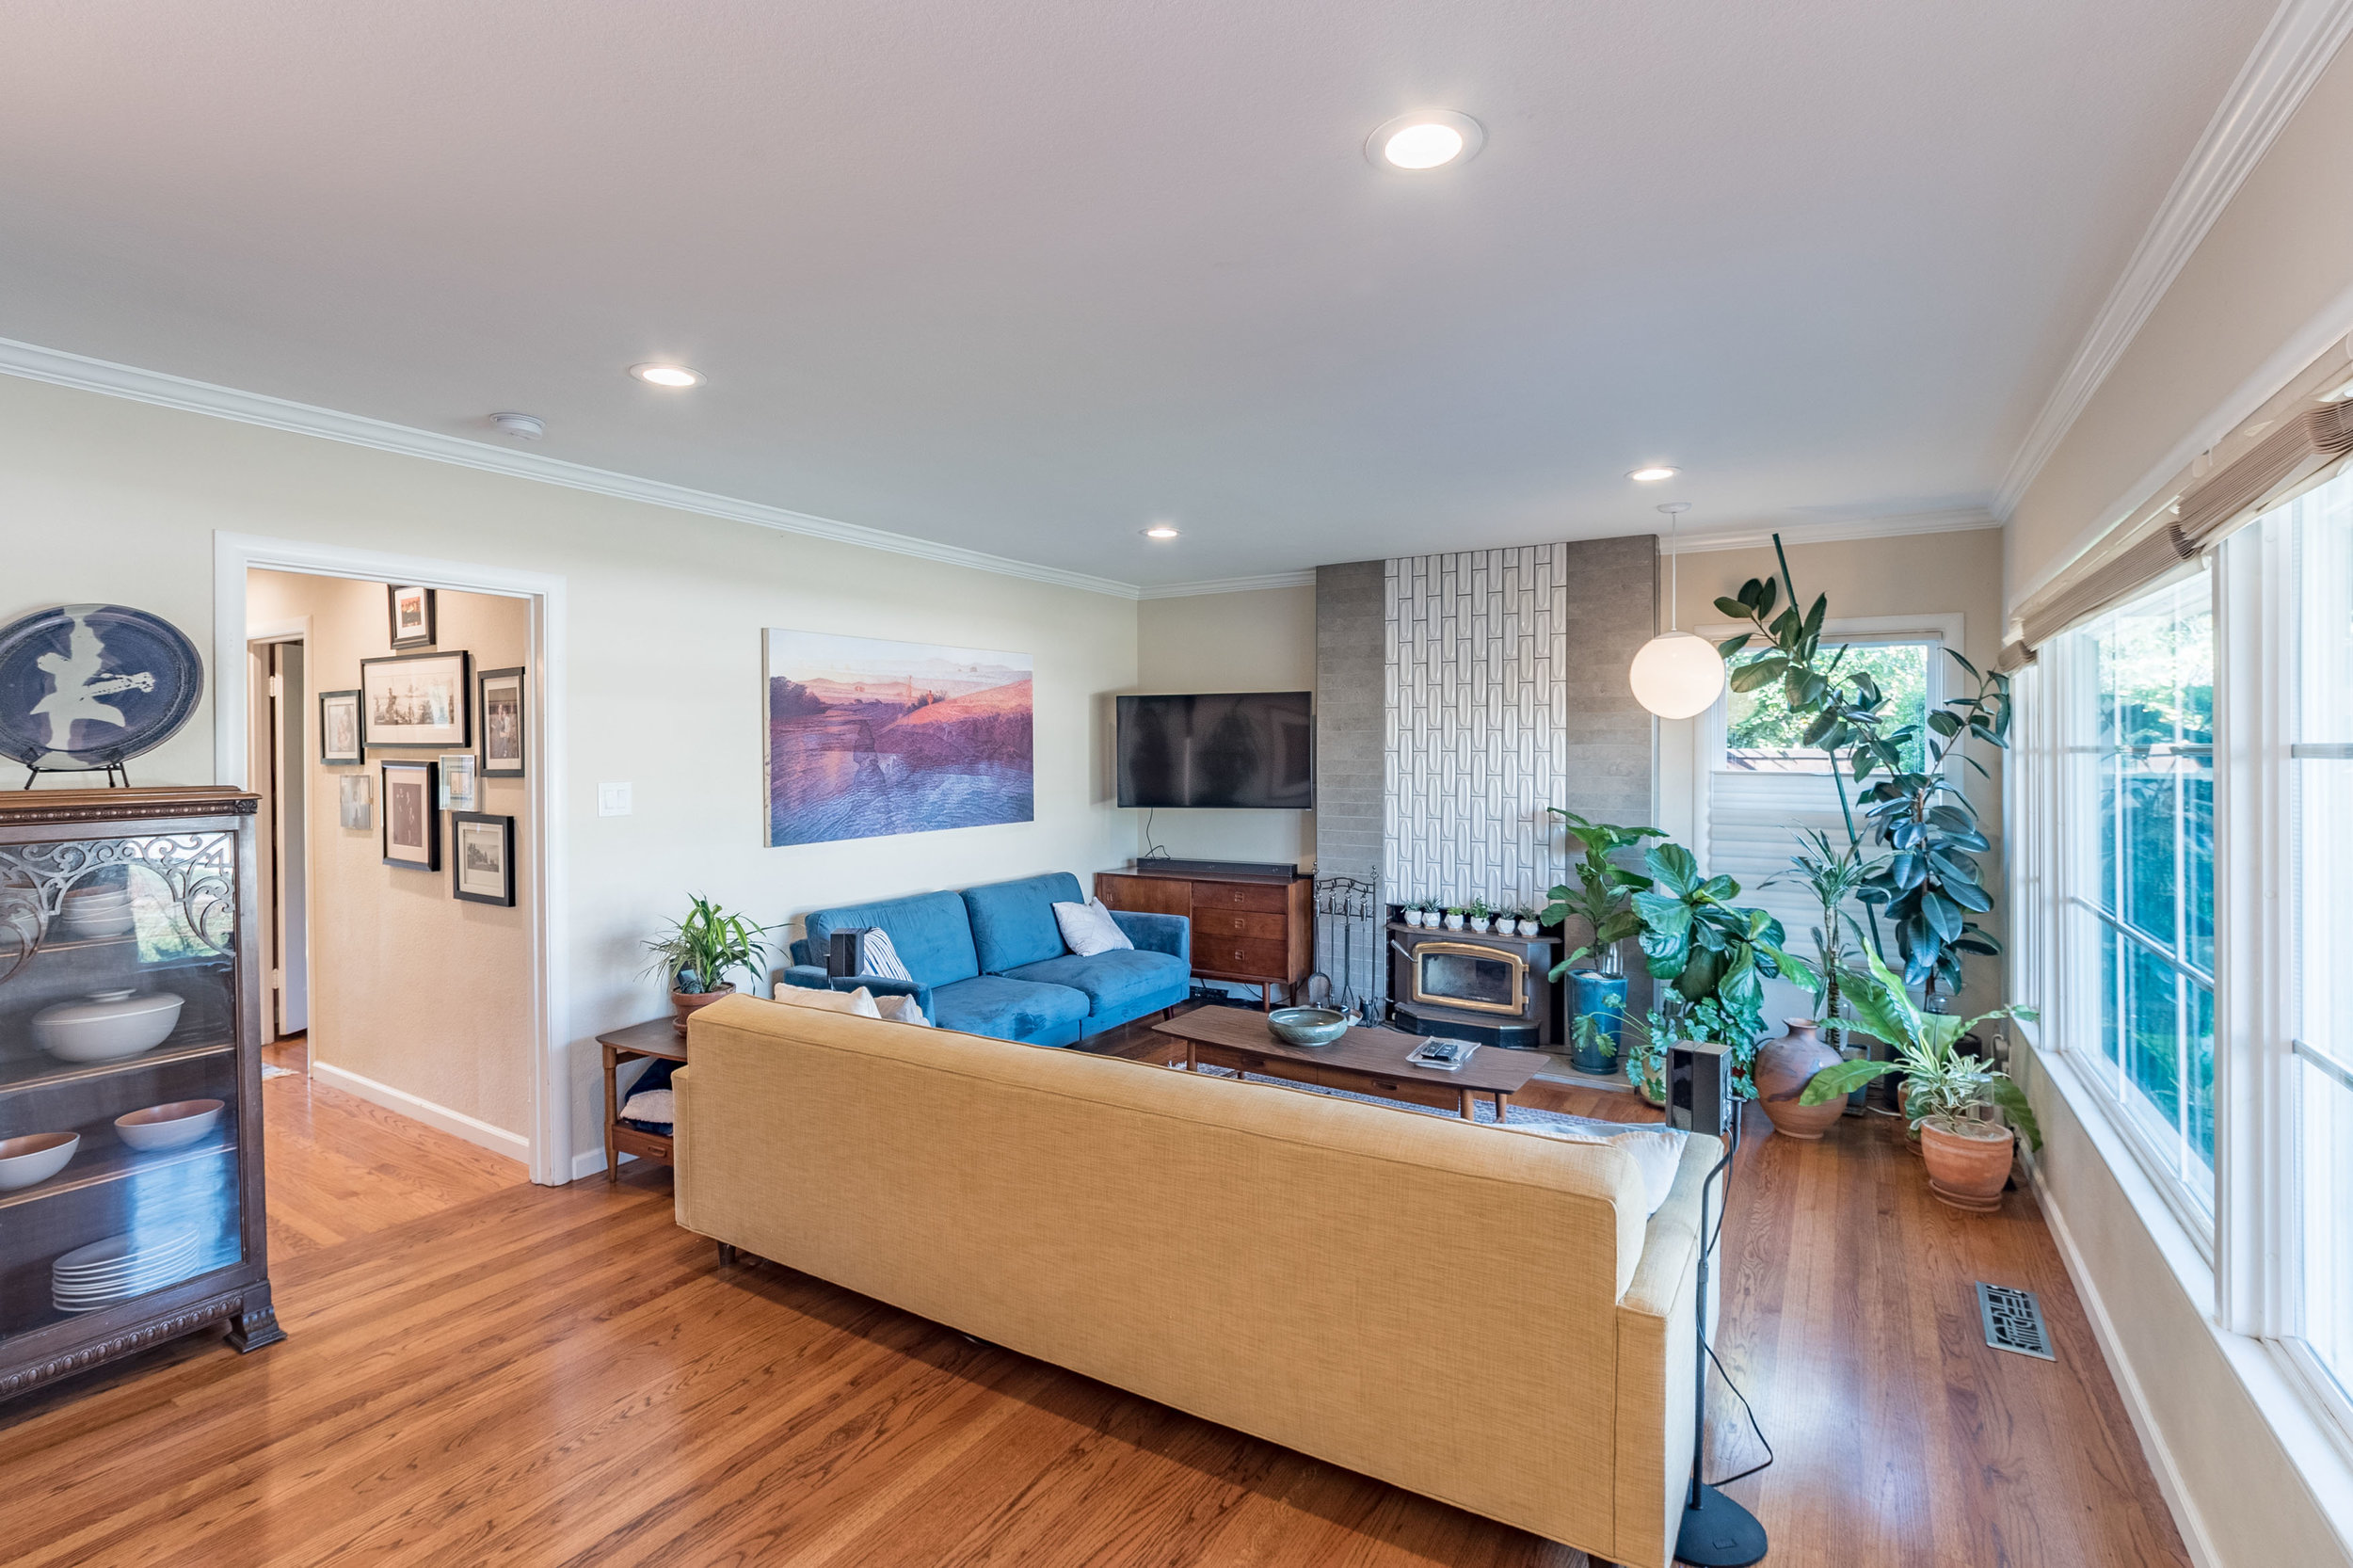 Turnkey Home with Open Floorplan